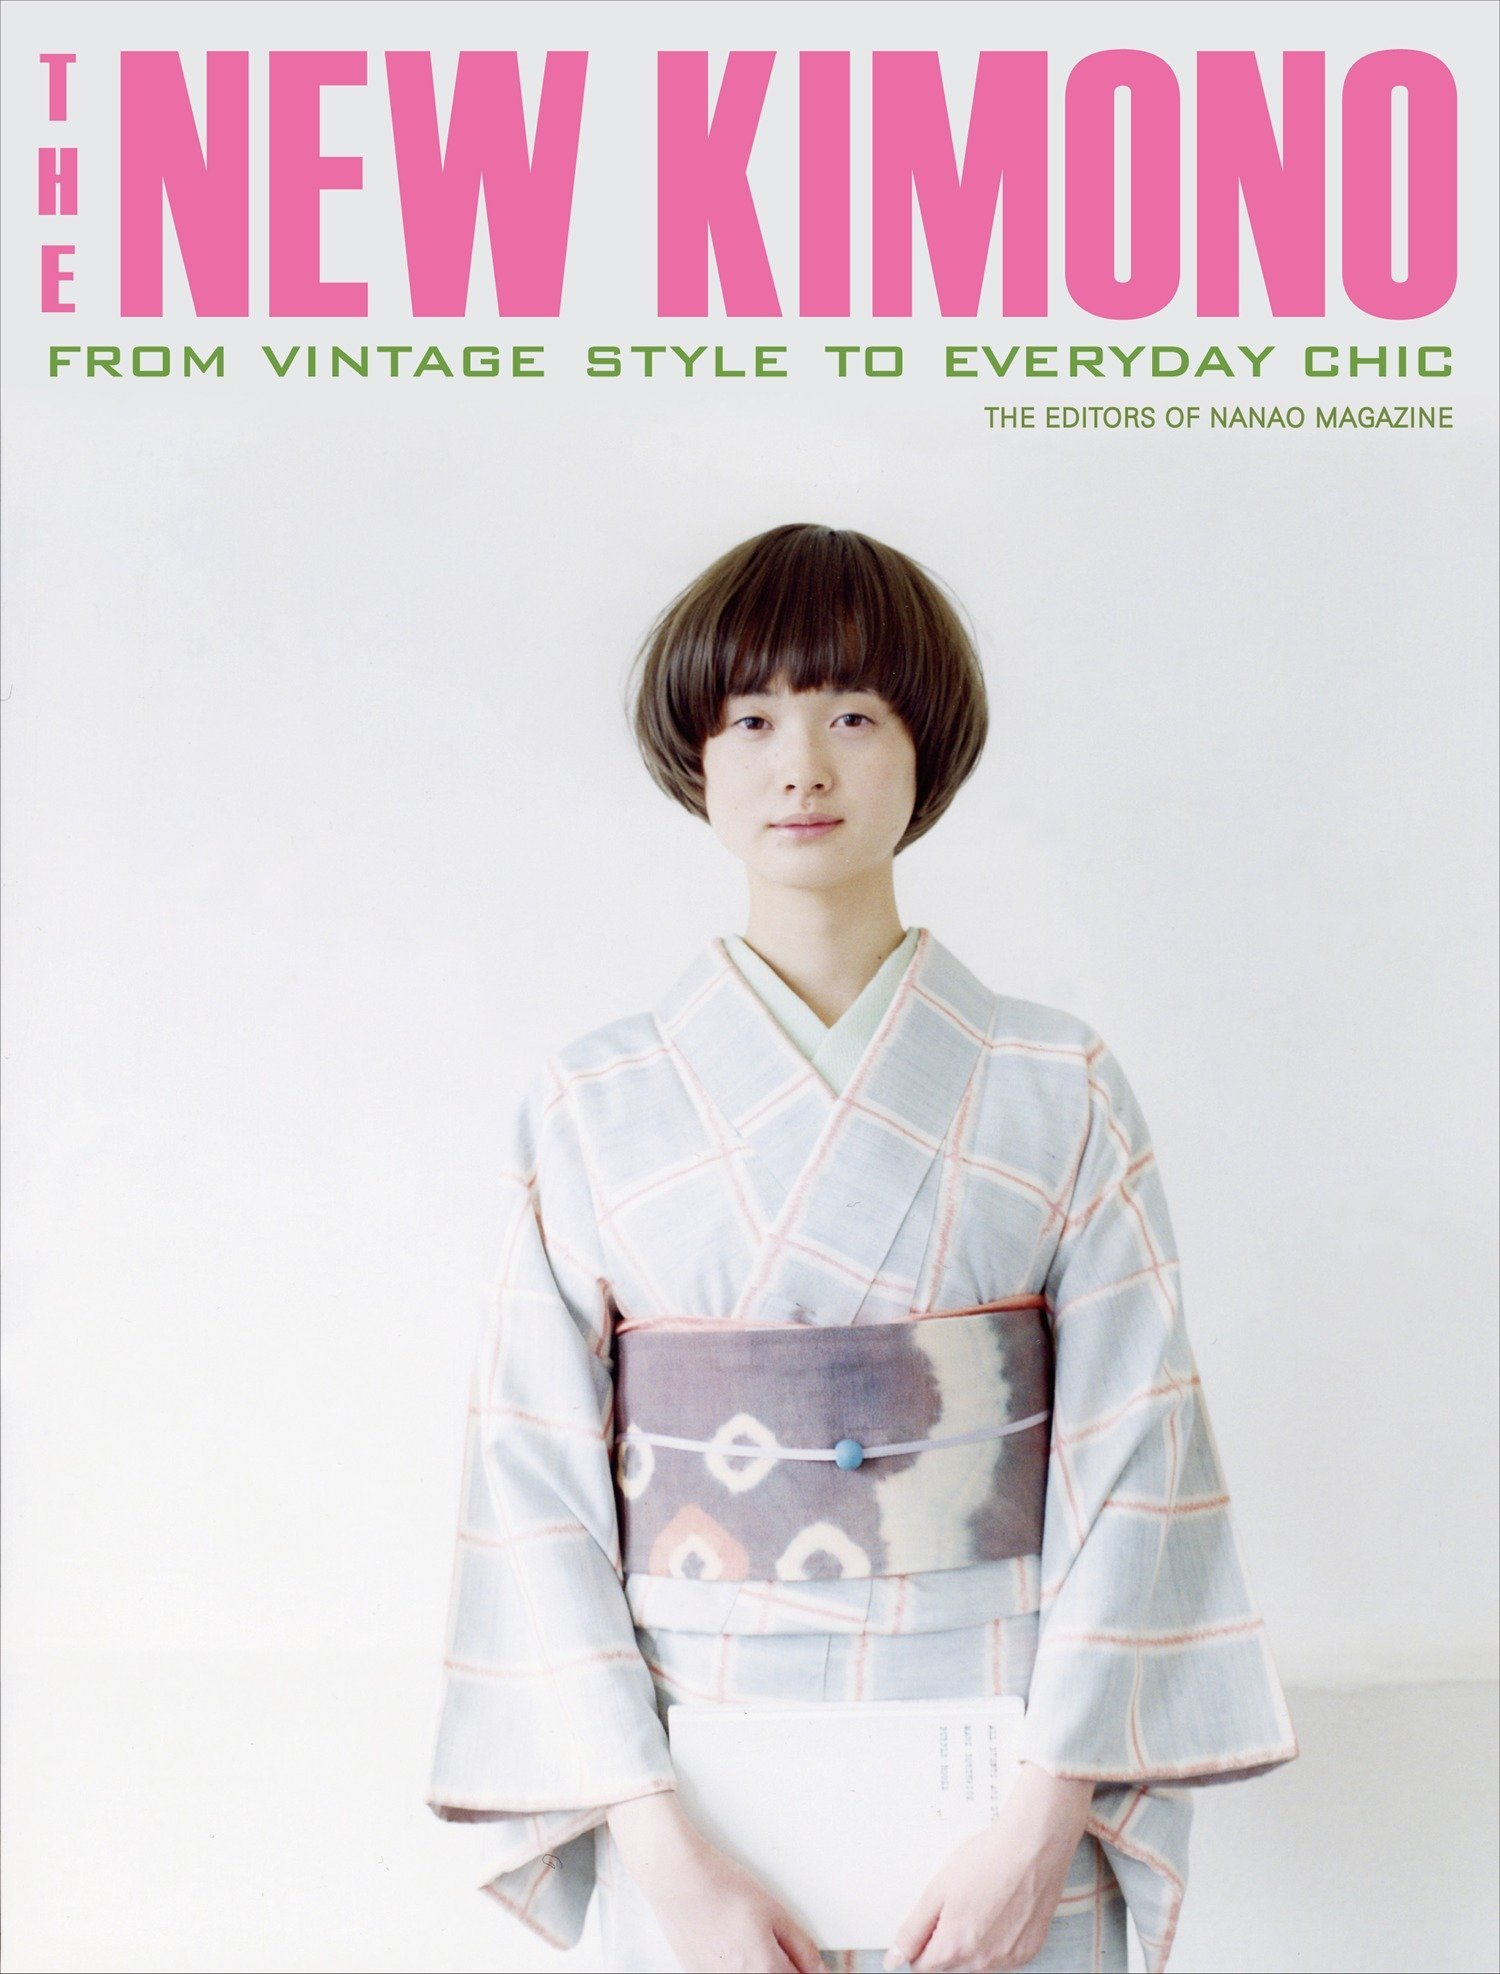 The New Kimono: From Vintage Style to Everyday Chic by Kodansha